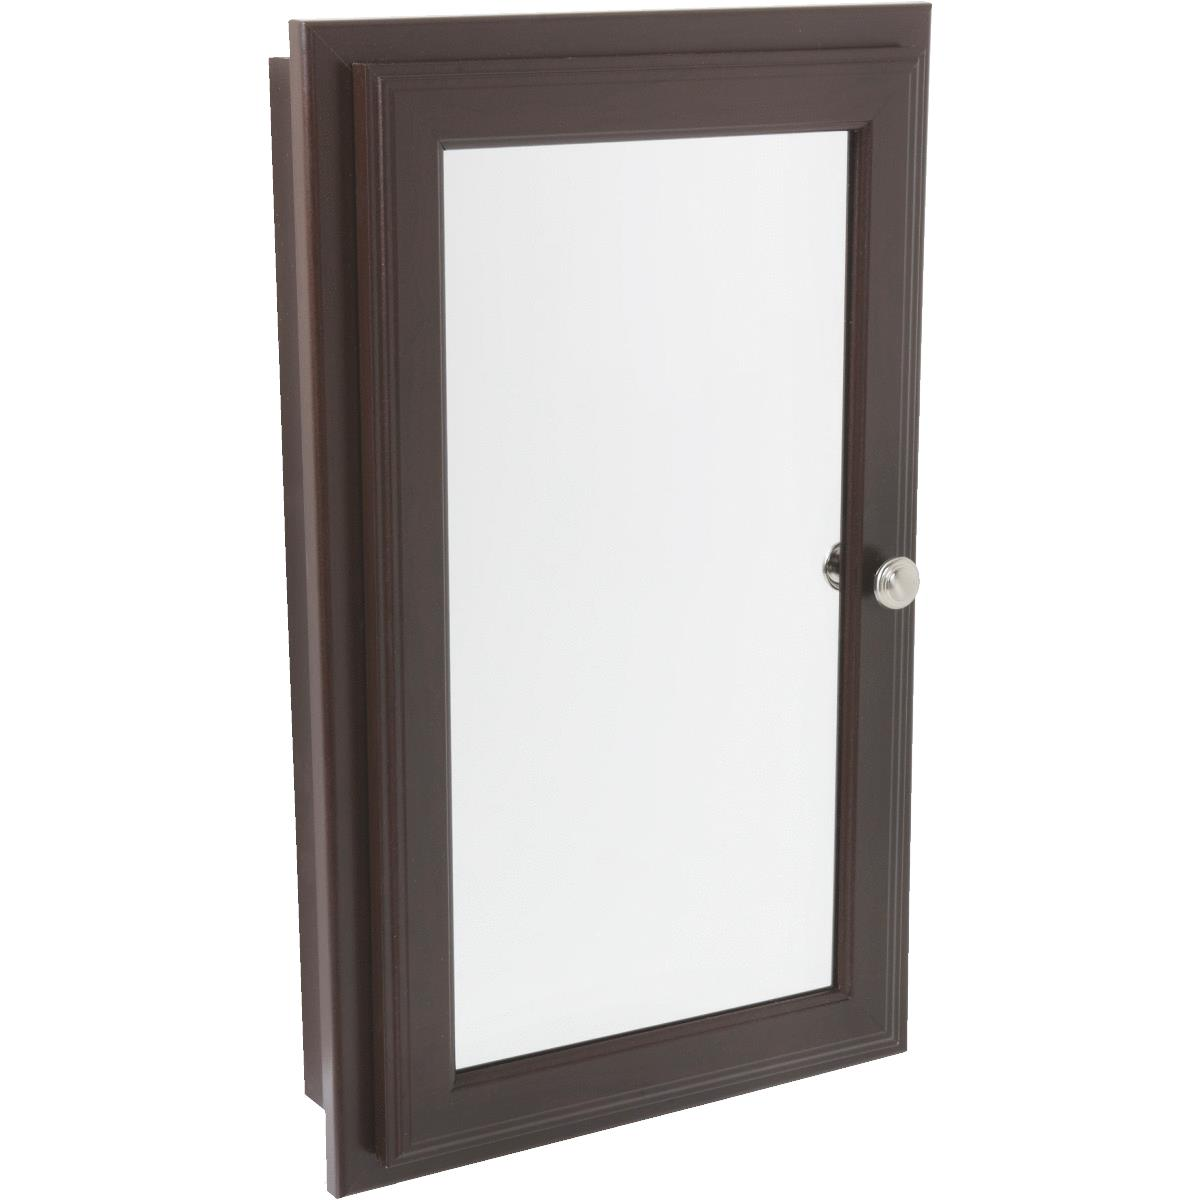 Continental Cabinets Framed Mirrored Door Medicine Cabinet by Continental Cabinets by RSI Home Products